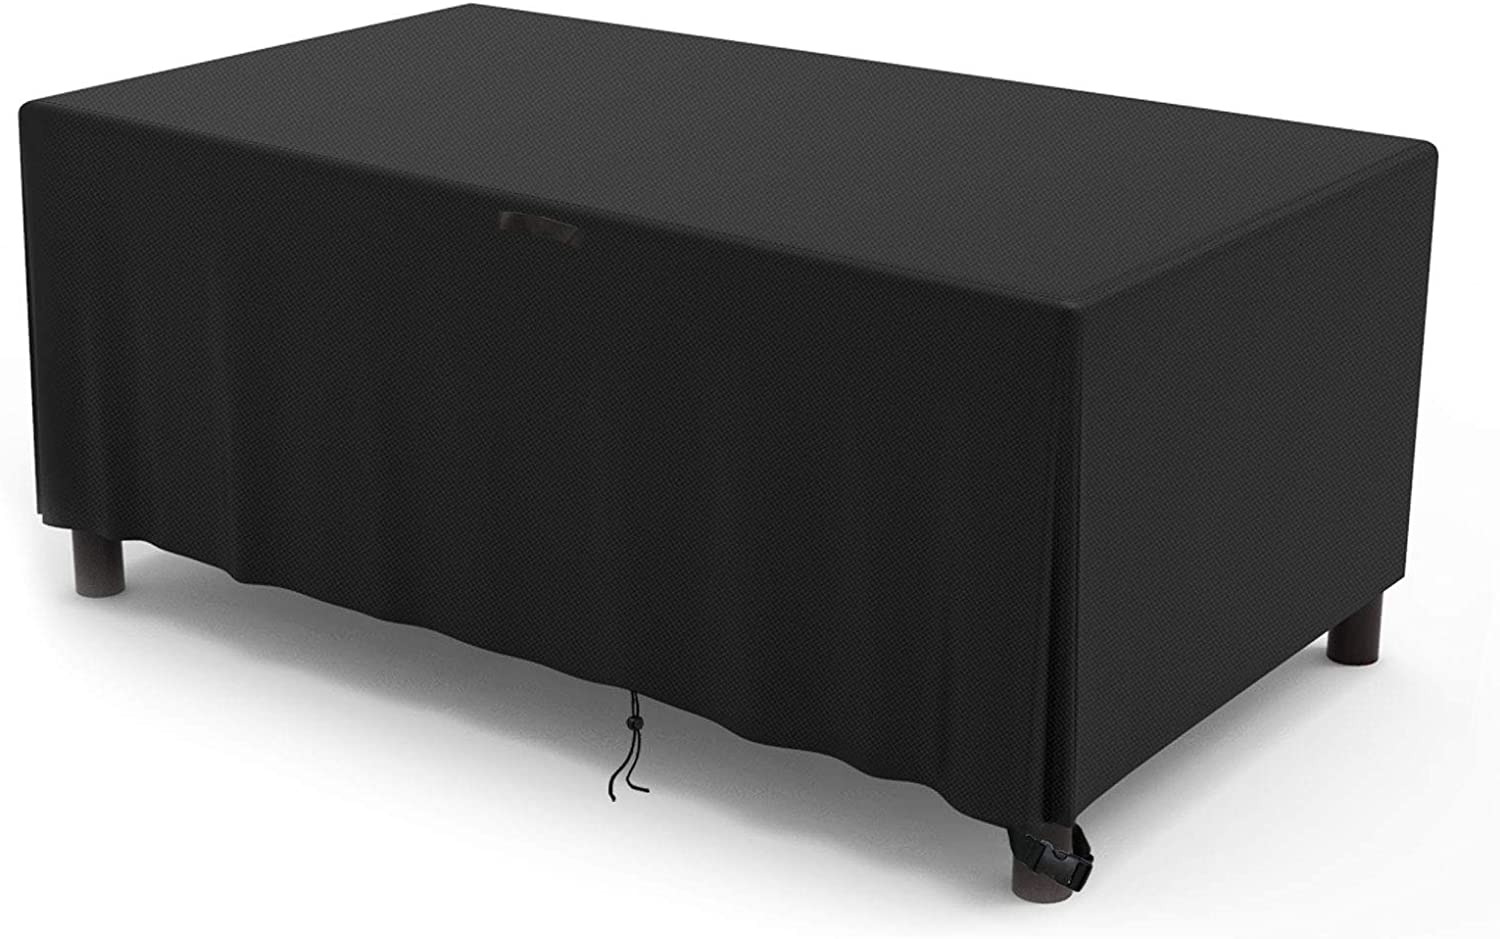 Kingling Patio Furniture Cover,Square Patio Table & Chair Set Cover,Tear-Resistant,Waterproof Outdoor Durable Furniture Cover,Black(106